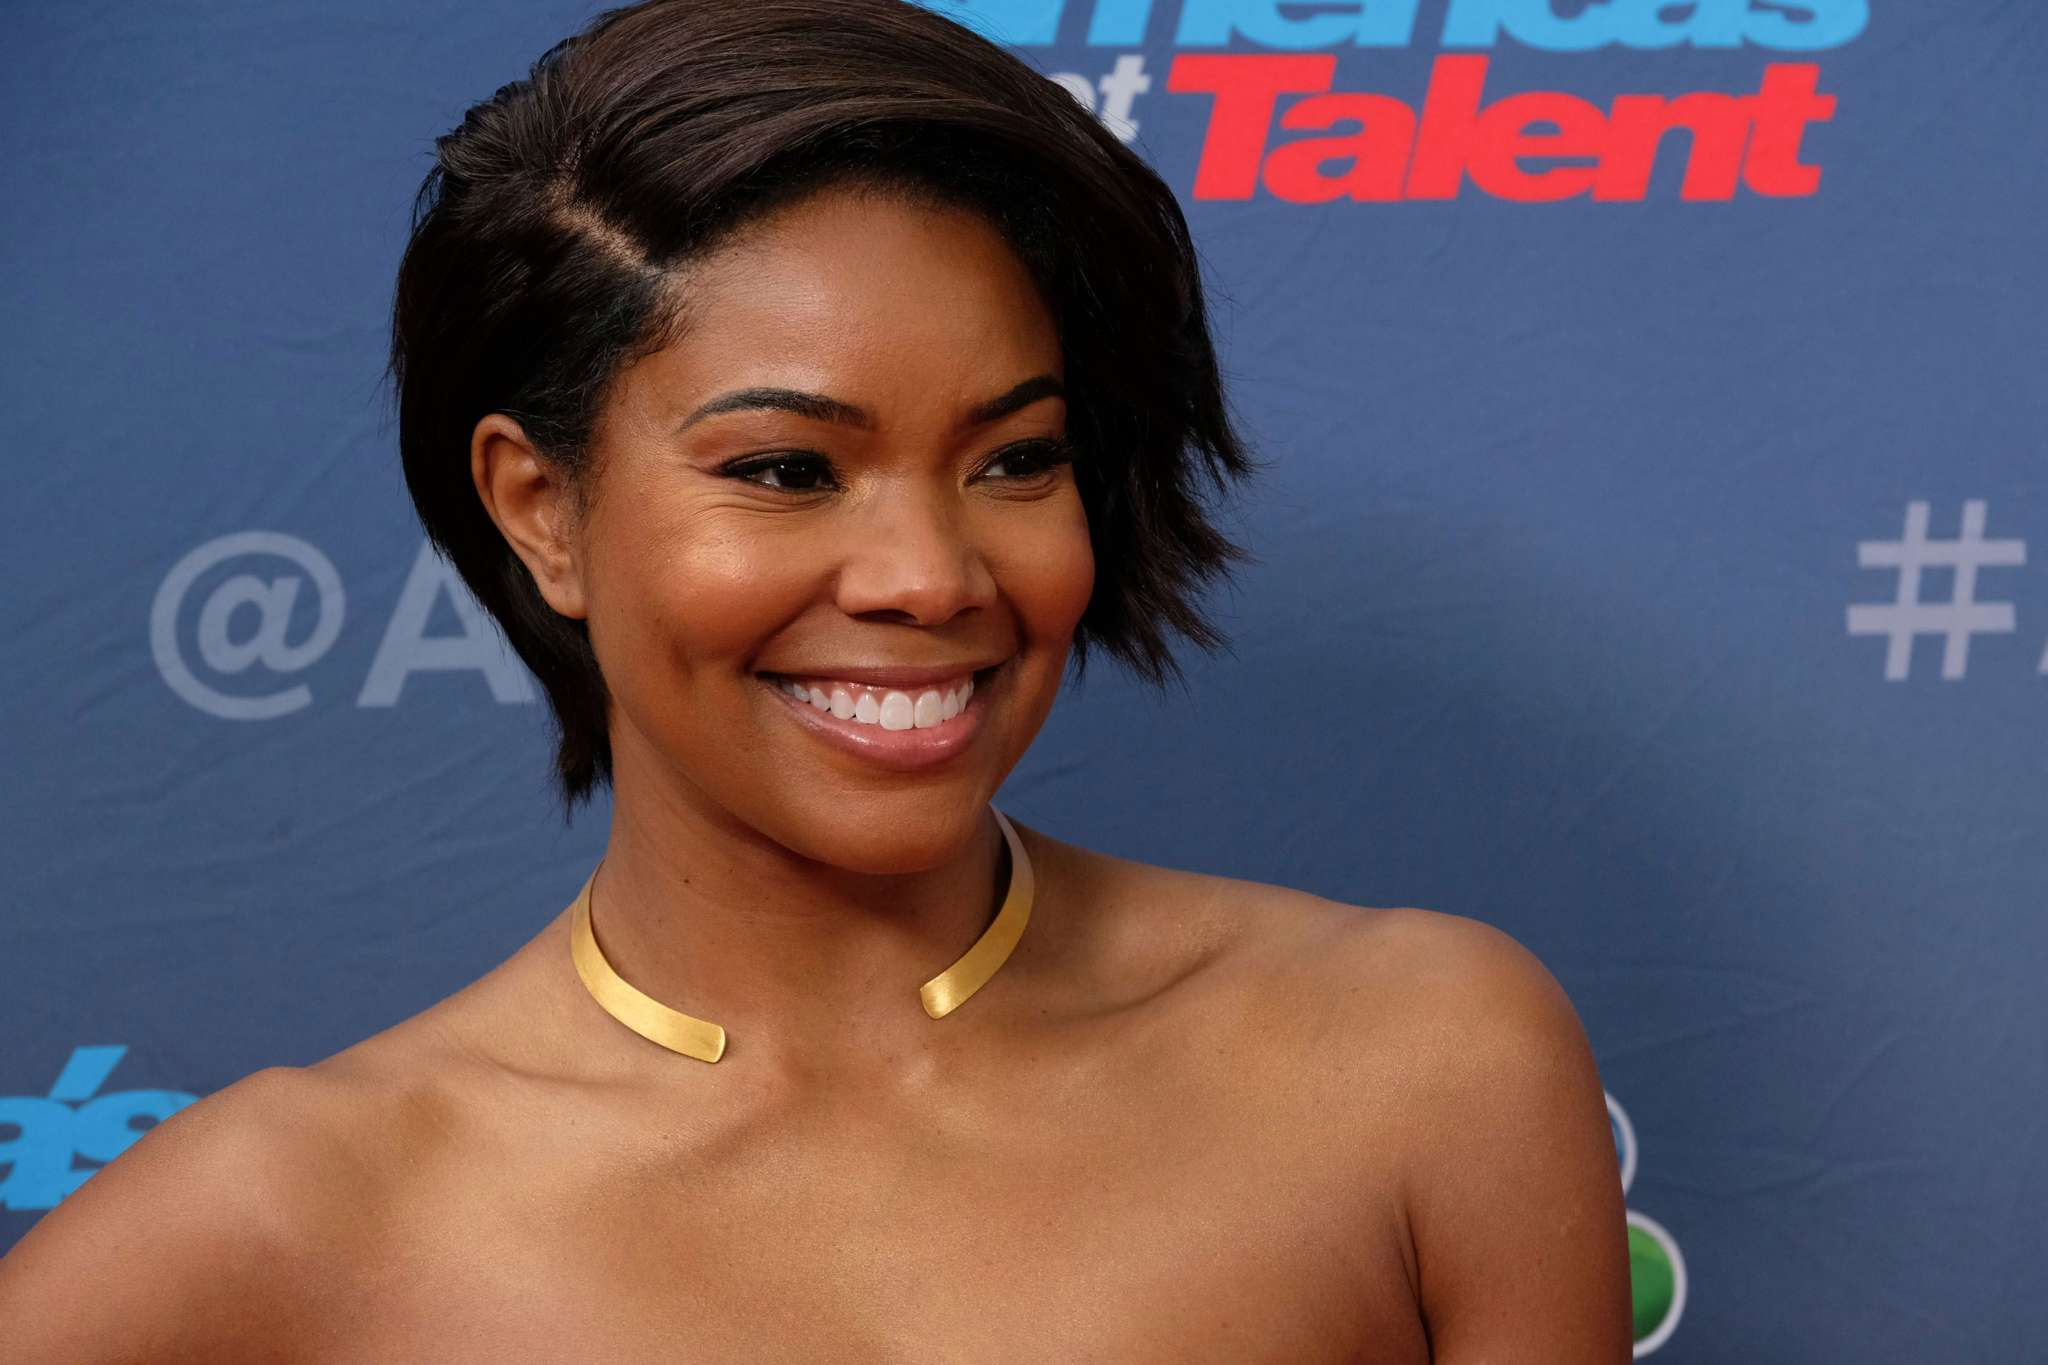 Gabrielle Union Praises A Very Special Movie Ahead Of The Elections